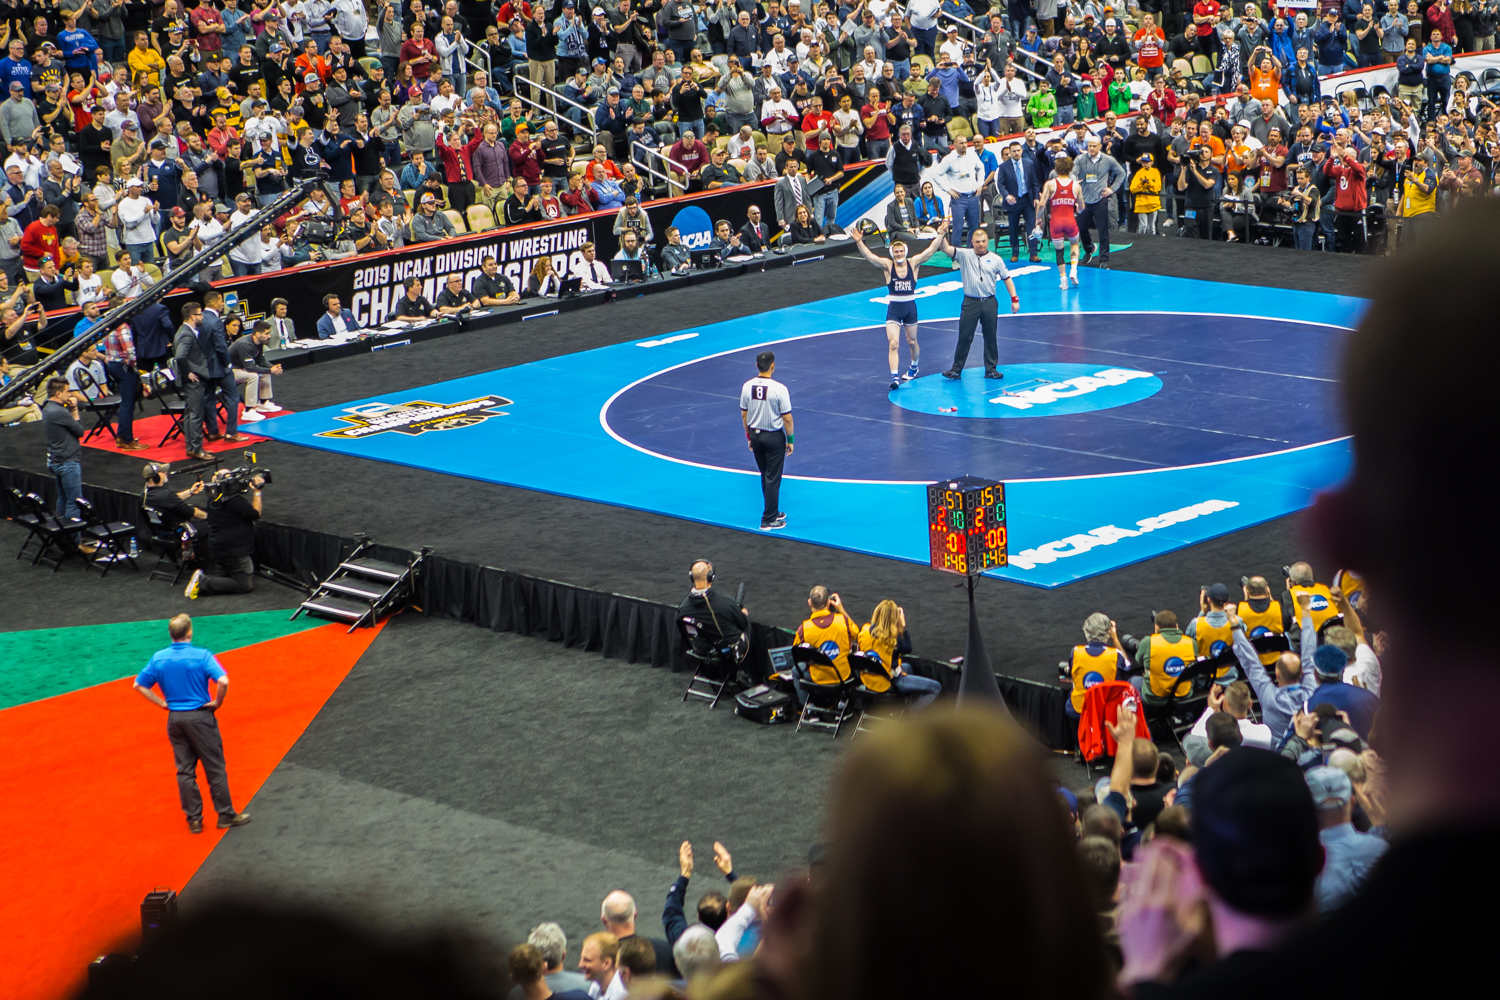 Penn+State%27s+157-pound+Jason+Nolf+defeats+Nebraska%27s+Tyler+Berger+during+the+final+session+of+the+2019+NCAA+D1+Wrestling+Championships+at+PPG+Paints+Arena+in+Pittsburgh%2C+PA+on+Saturday%2C+March+23%2C+2019.+Nolf+won+by+major+decision%2C+10-2%2C+and+earned+first-place+in+the+weight+class.